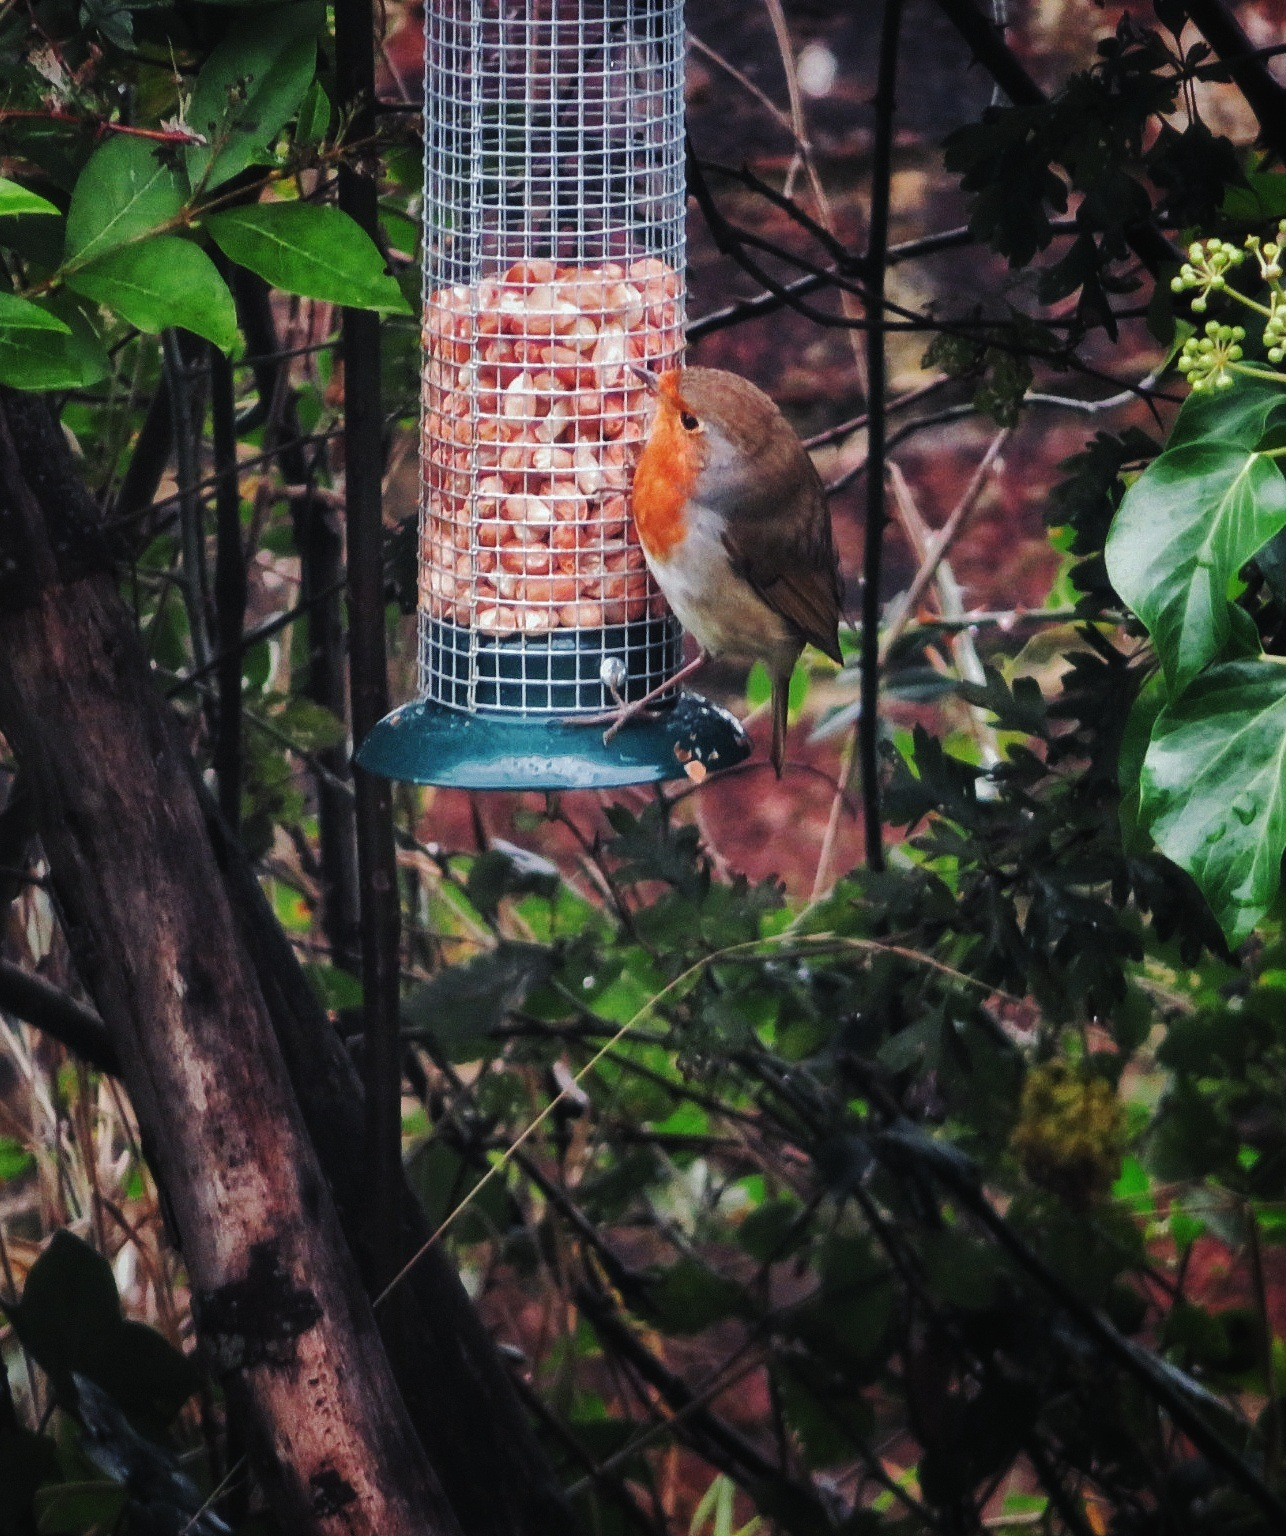 He likes his bird feeder! by Tamsyn Gustar